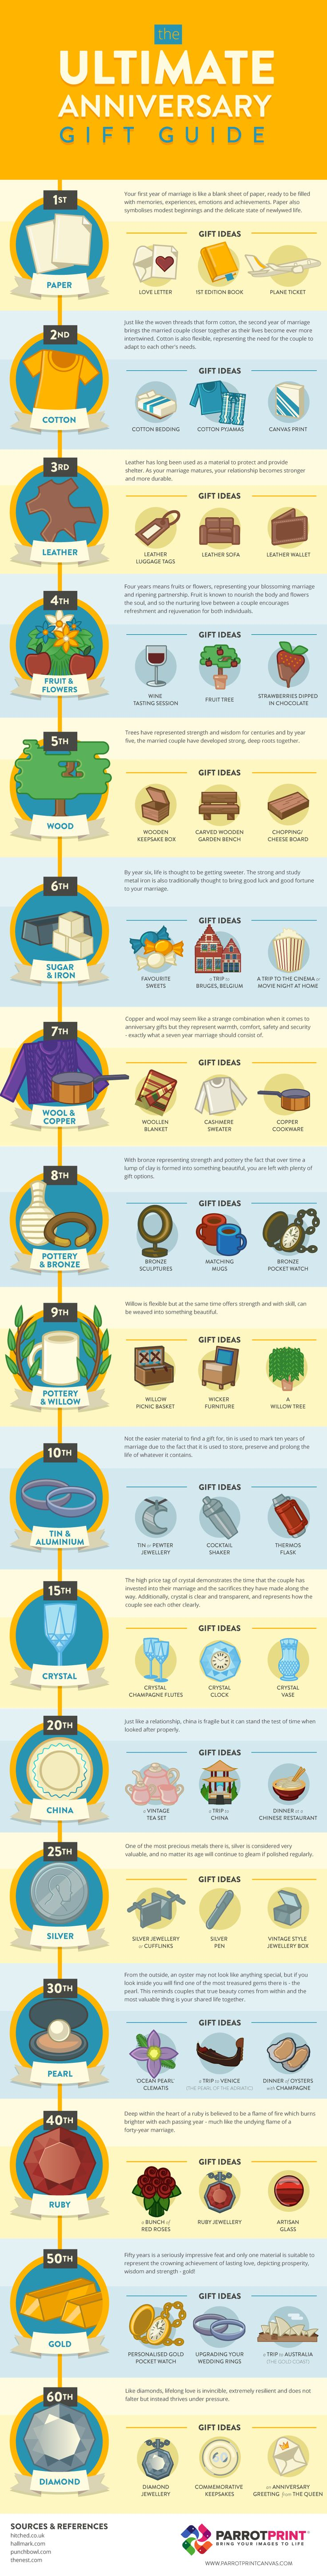 Infographic: The Ultimate Anniversary Gift Guide - DesignTAXI.com